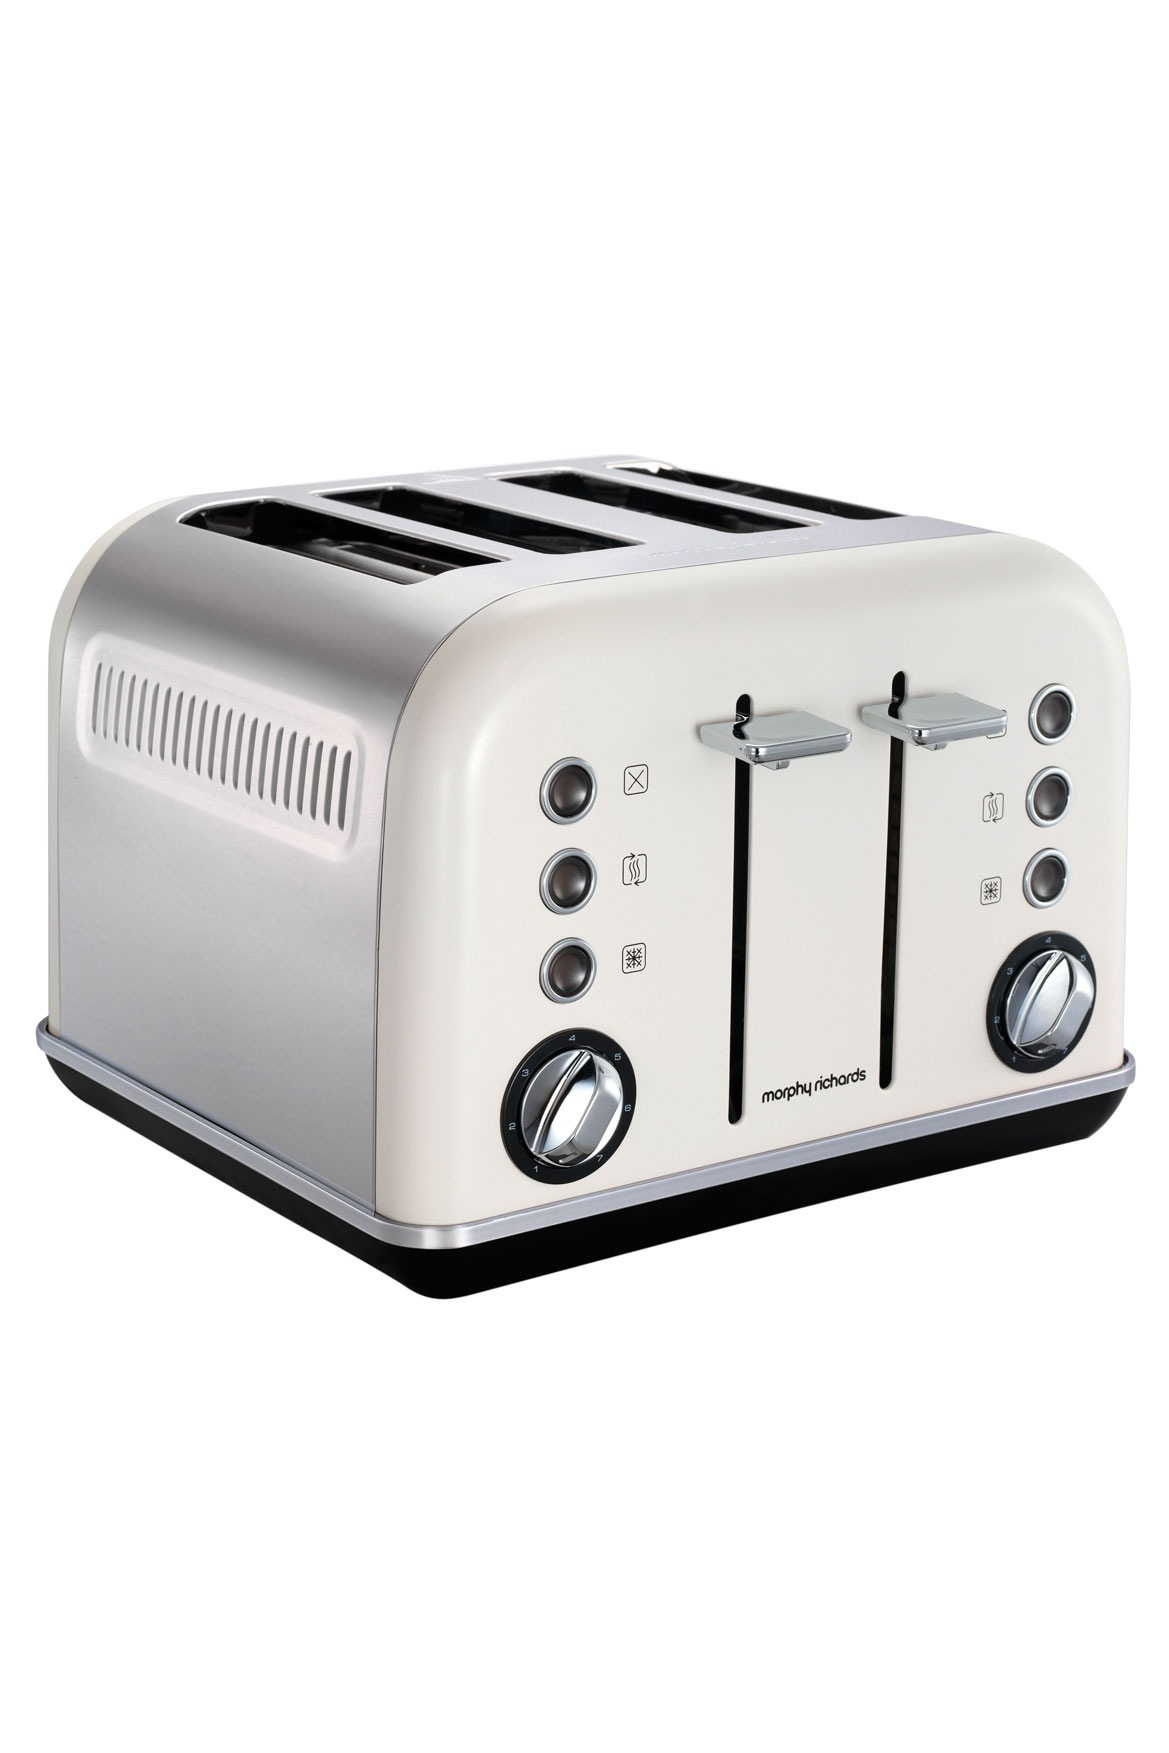 Morphy Richards | 242021 Accents 4 Slice Toaster: White | Myer Online